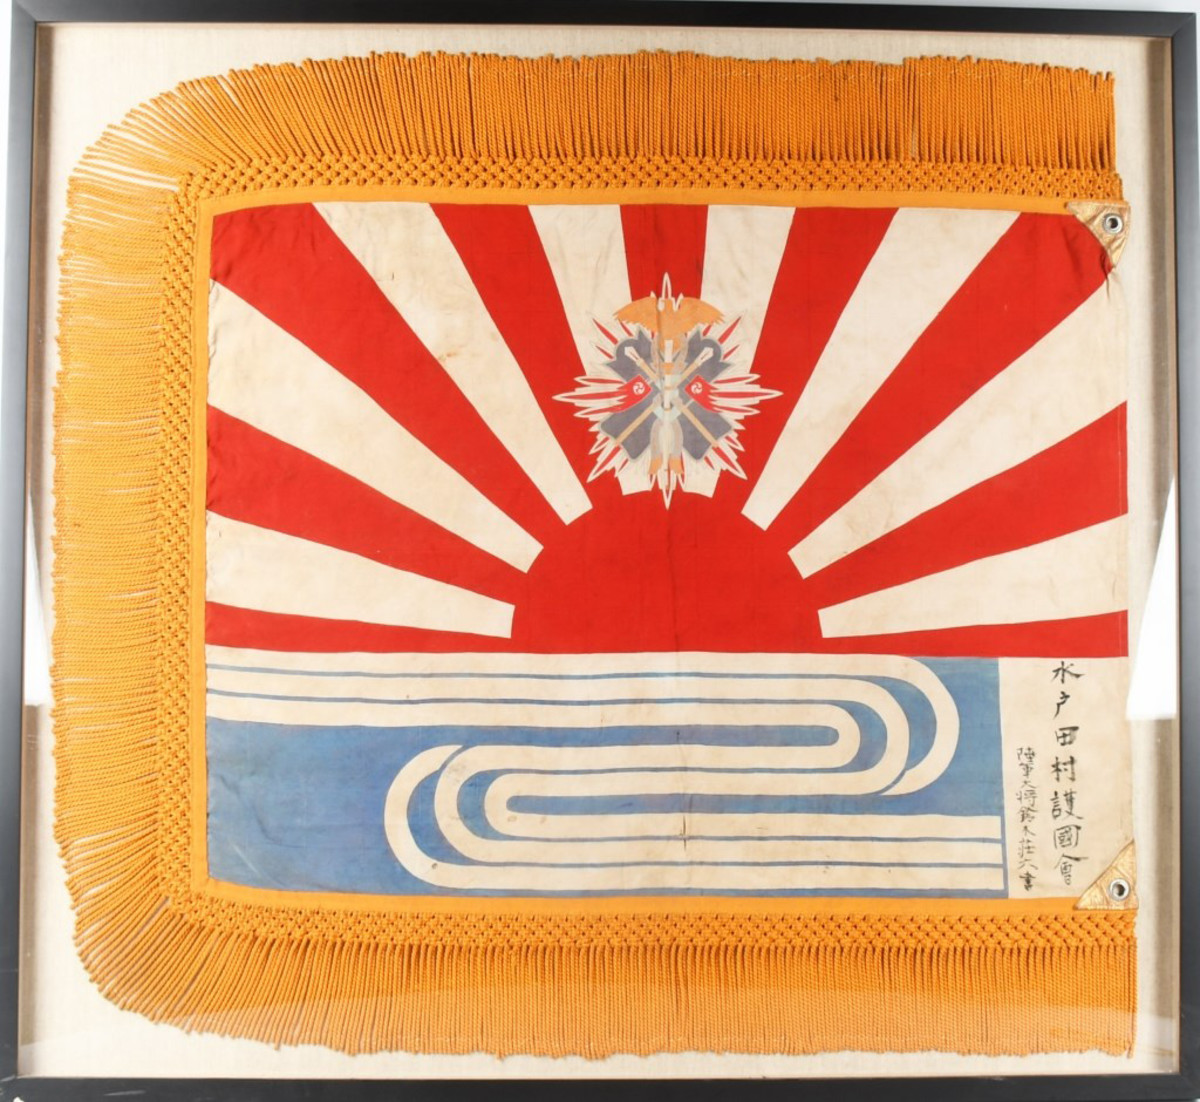 https://www.liveauctioneers.com/item/61938432_pre-wwii-japanese-chief-of-army-general-staff-flagPre-World War II personal flag of Japanese Chief of Army General Suzuki Soroku, who served in that capacity from 1926-1930. Photo - Milestone Auctions